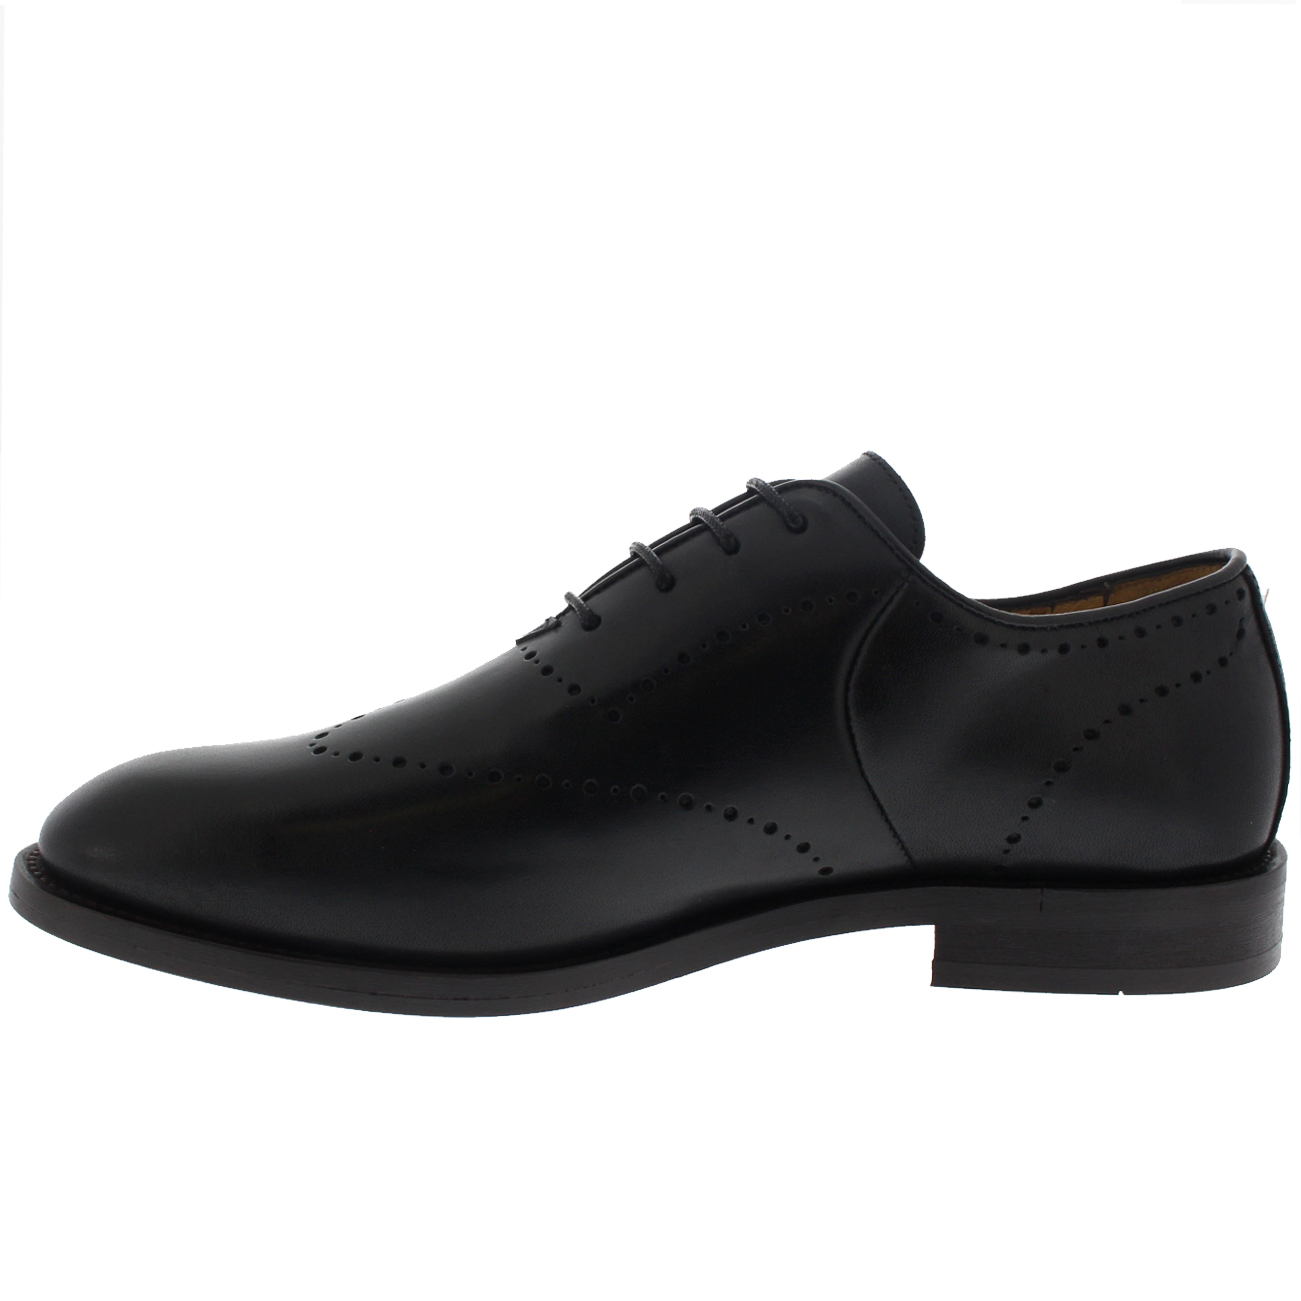 Mens H By Hudson Twain Leather Smart Oxfords Oxfords Oxfords Office Formal Work schuhe UK 6-12 0568c3